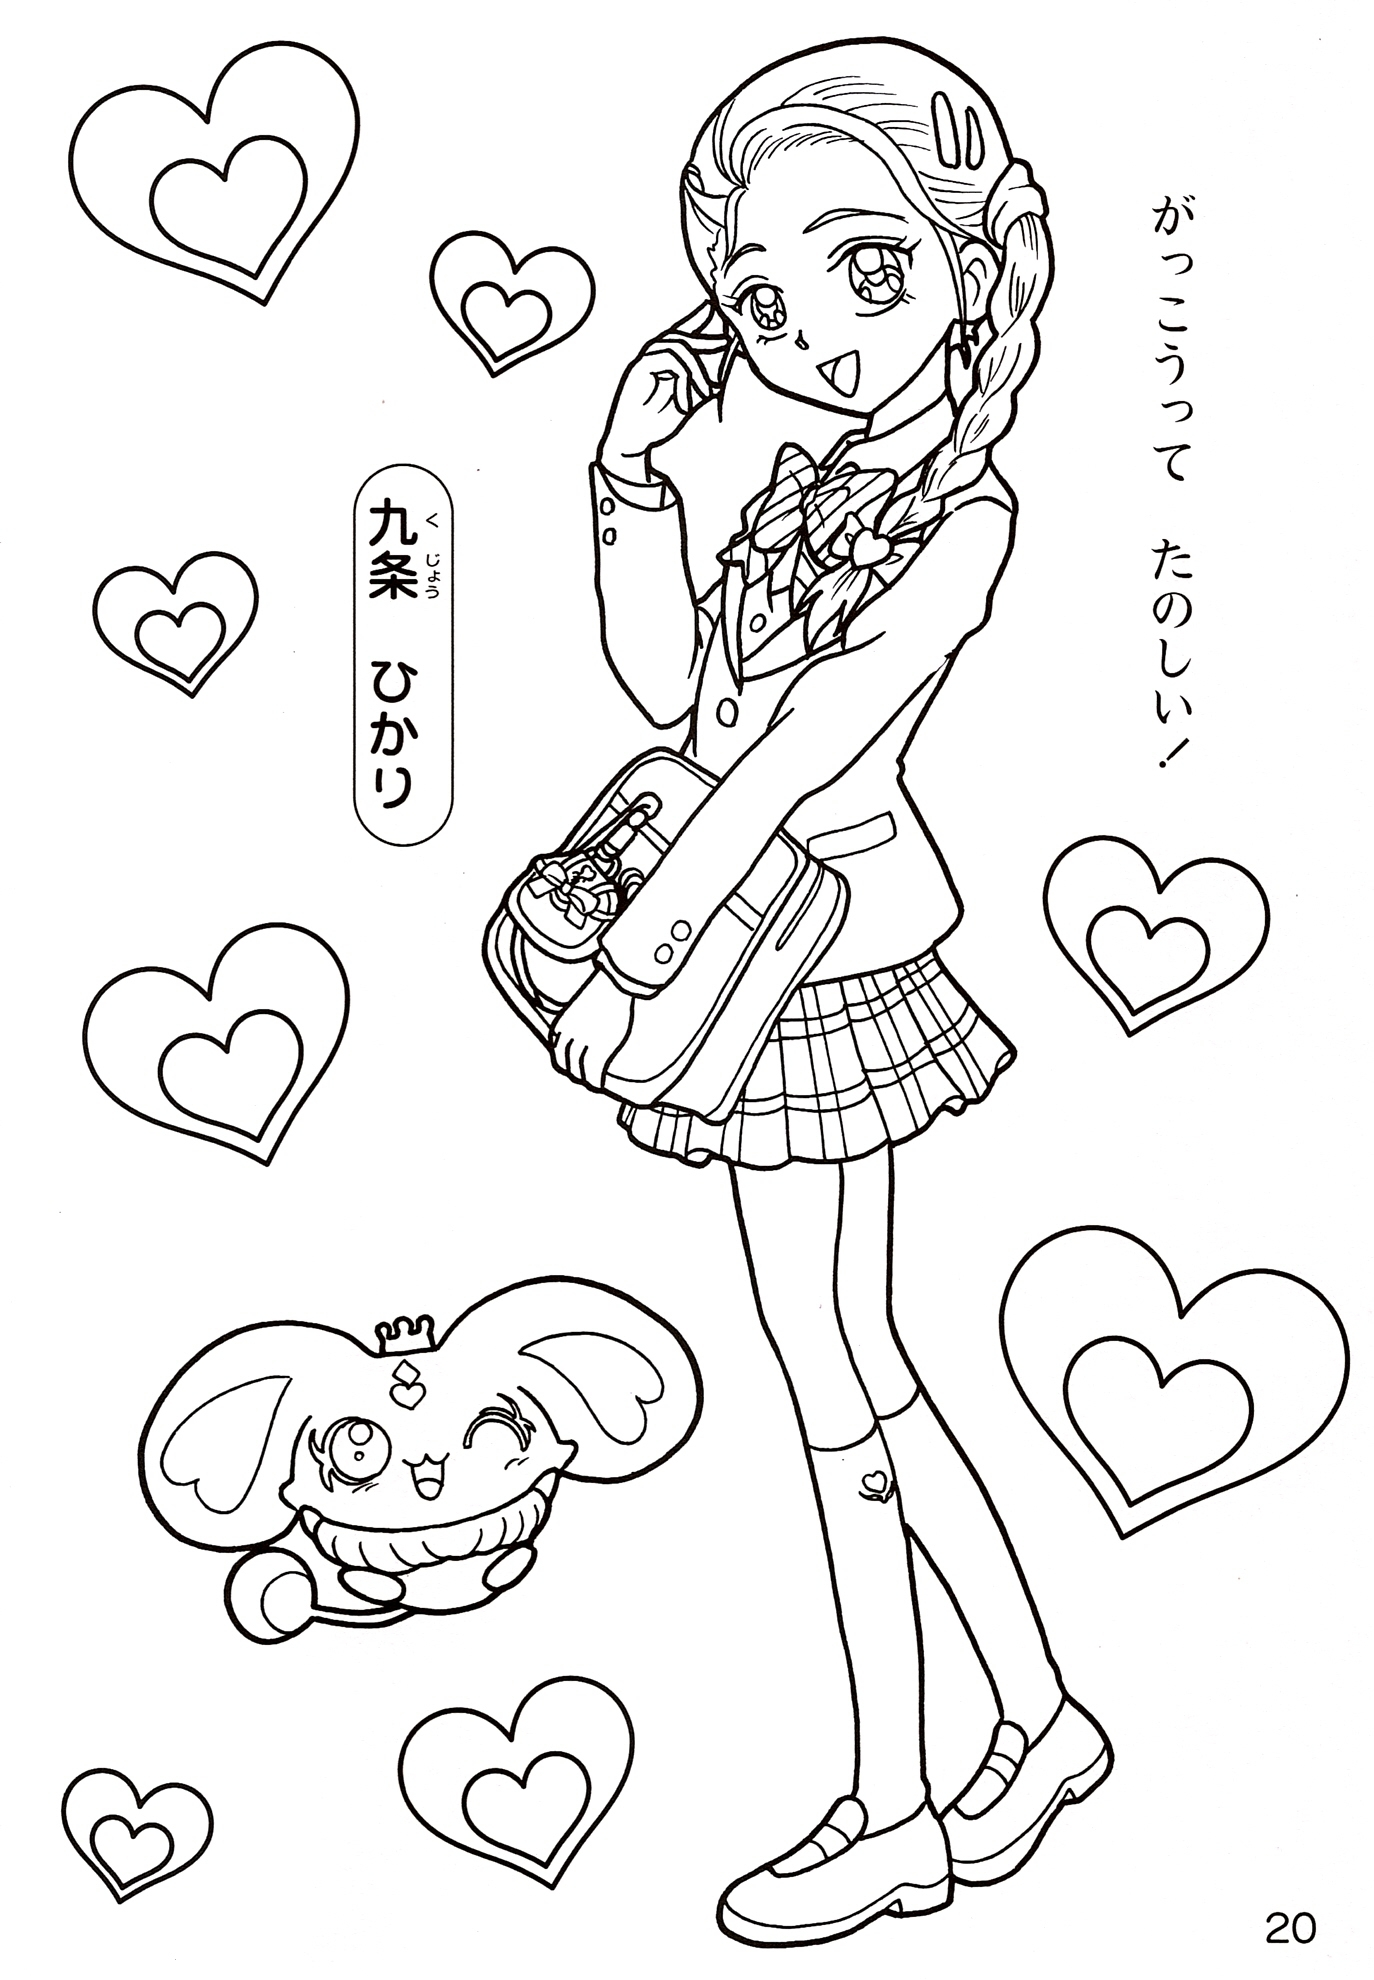 Heart Diagram Coloring Pages